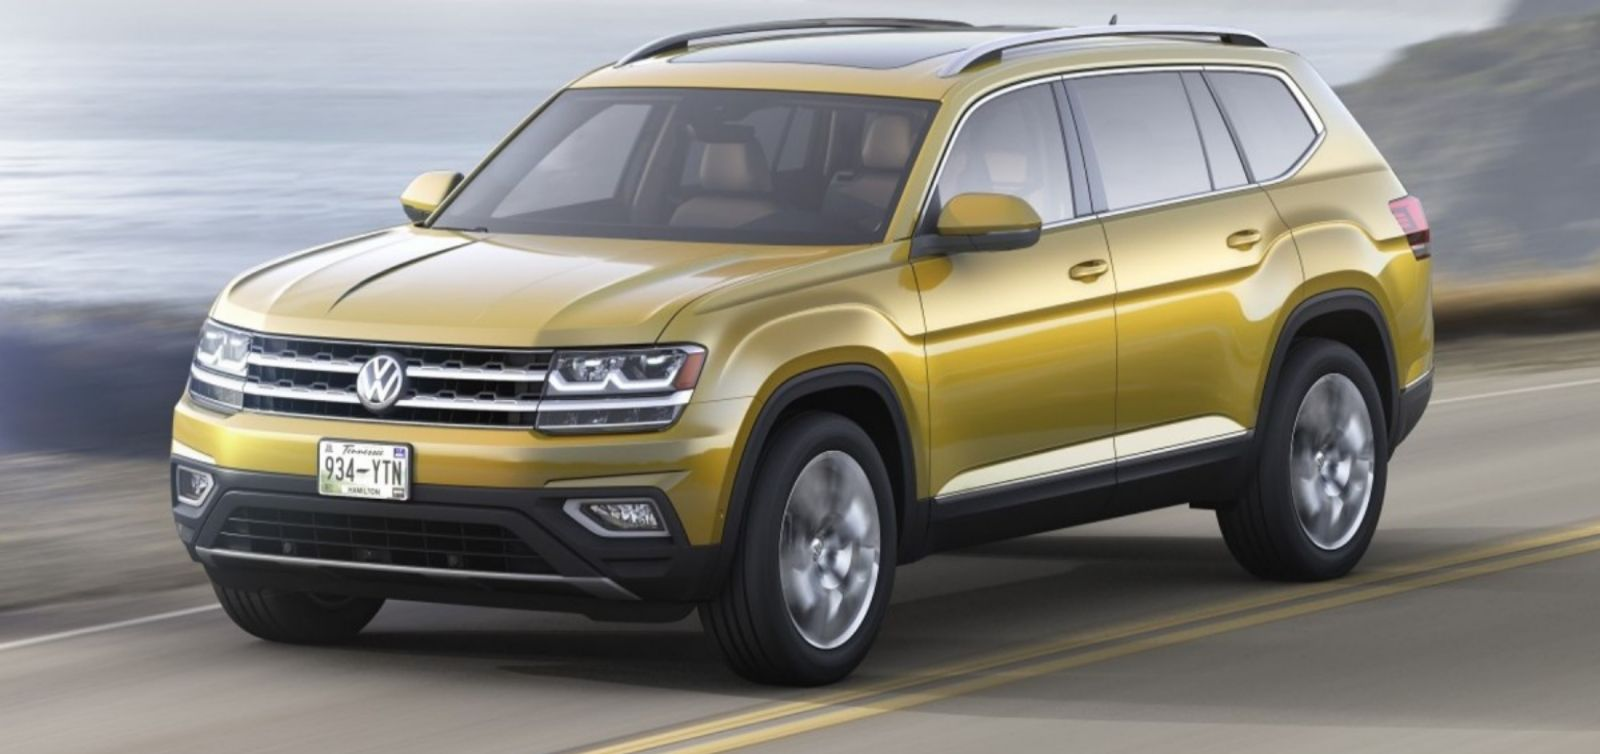 Volkswagen Atlas salone dell'automobile di Los Angeles